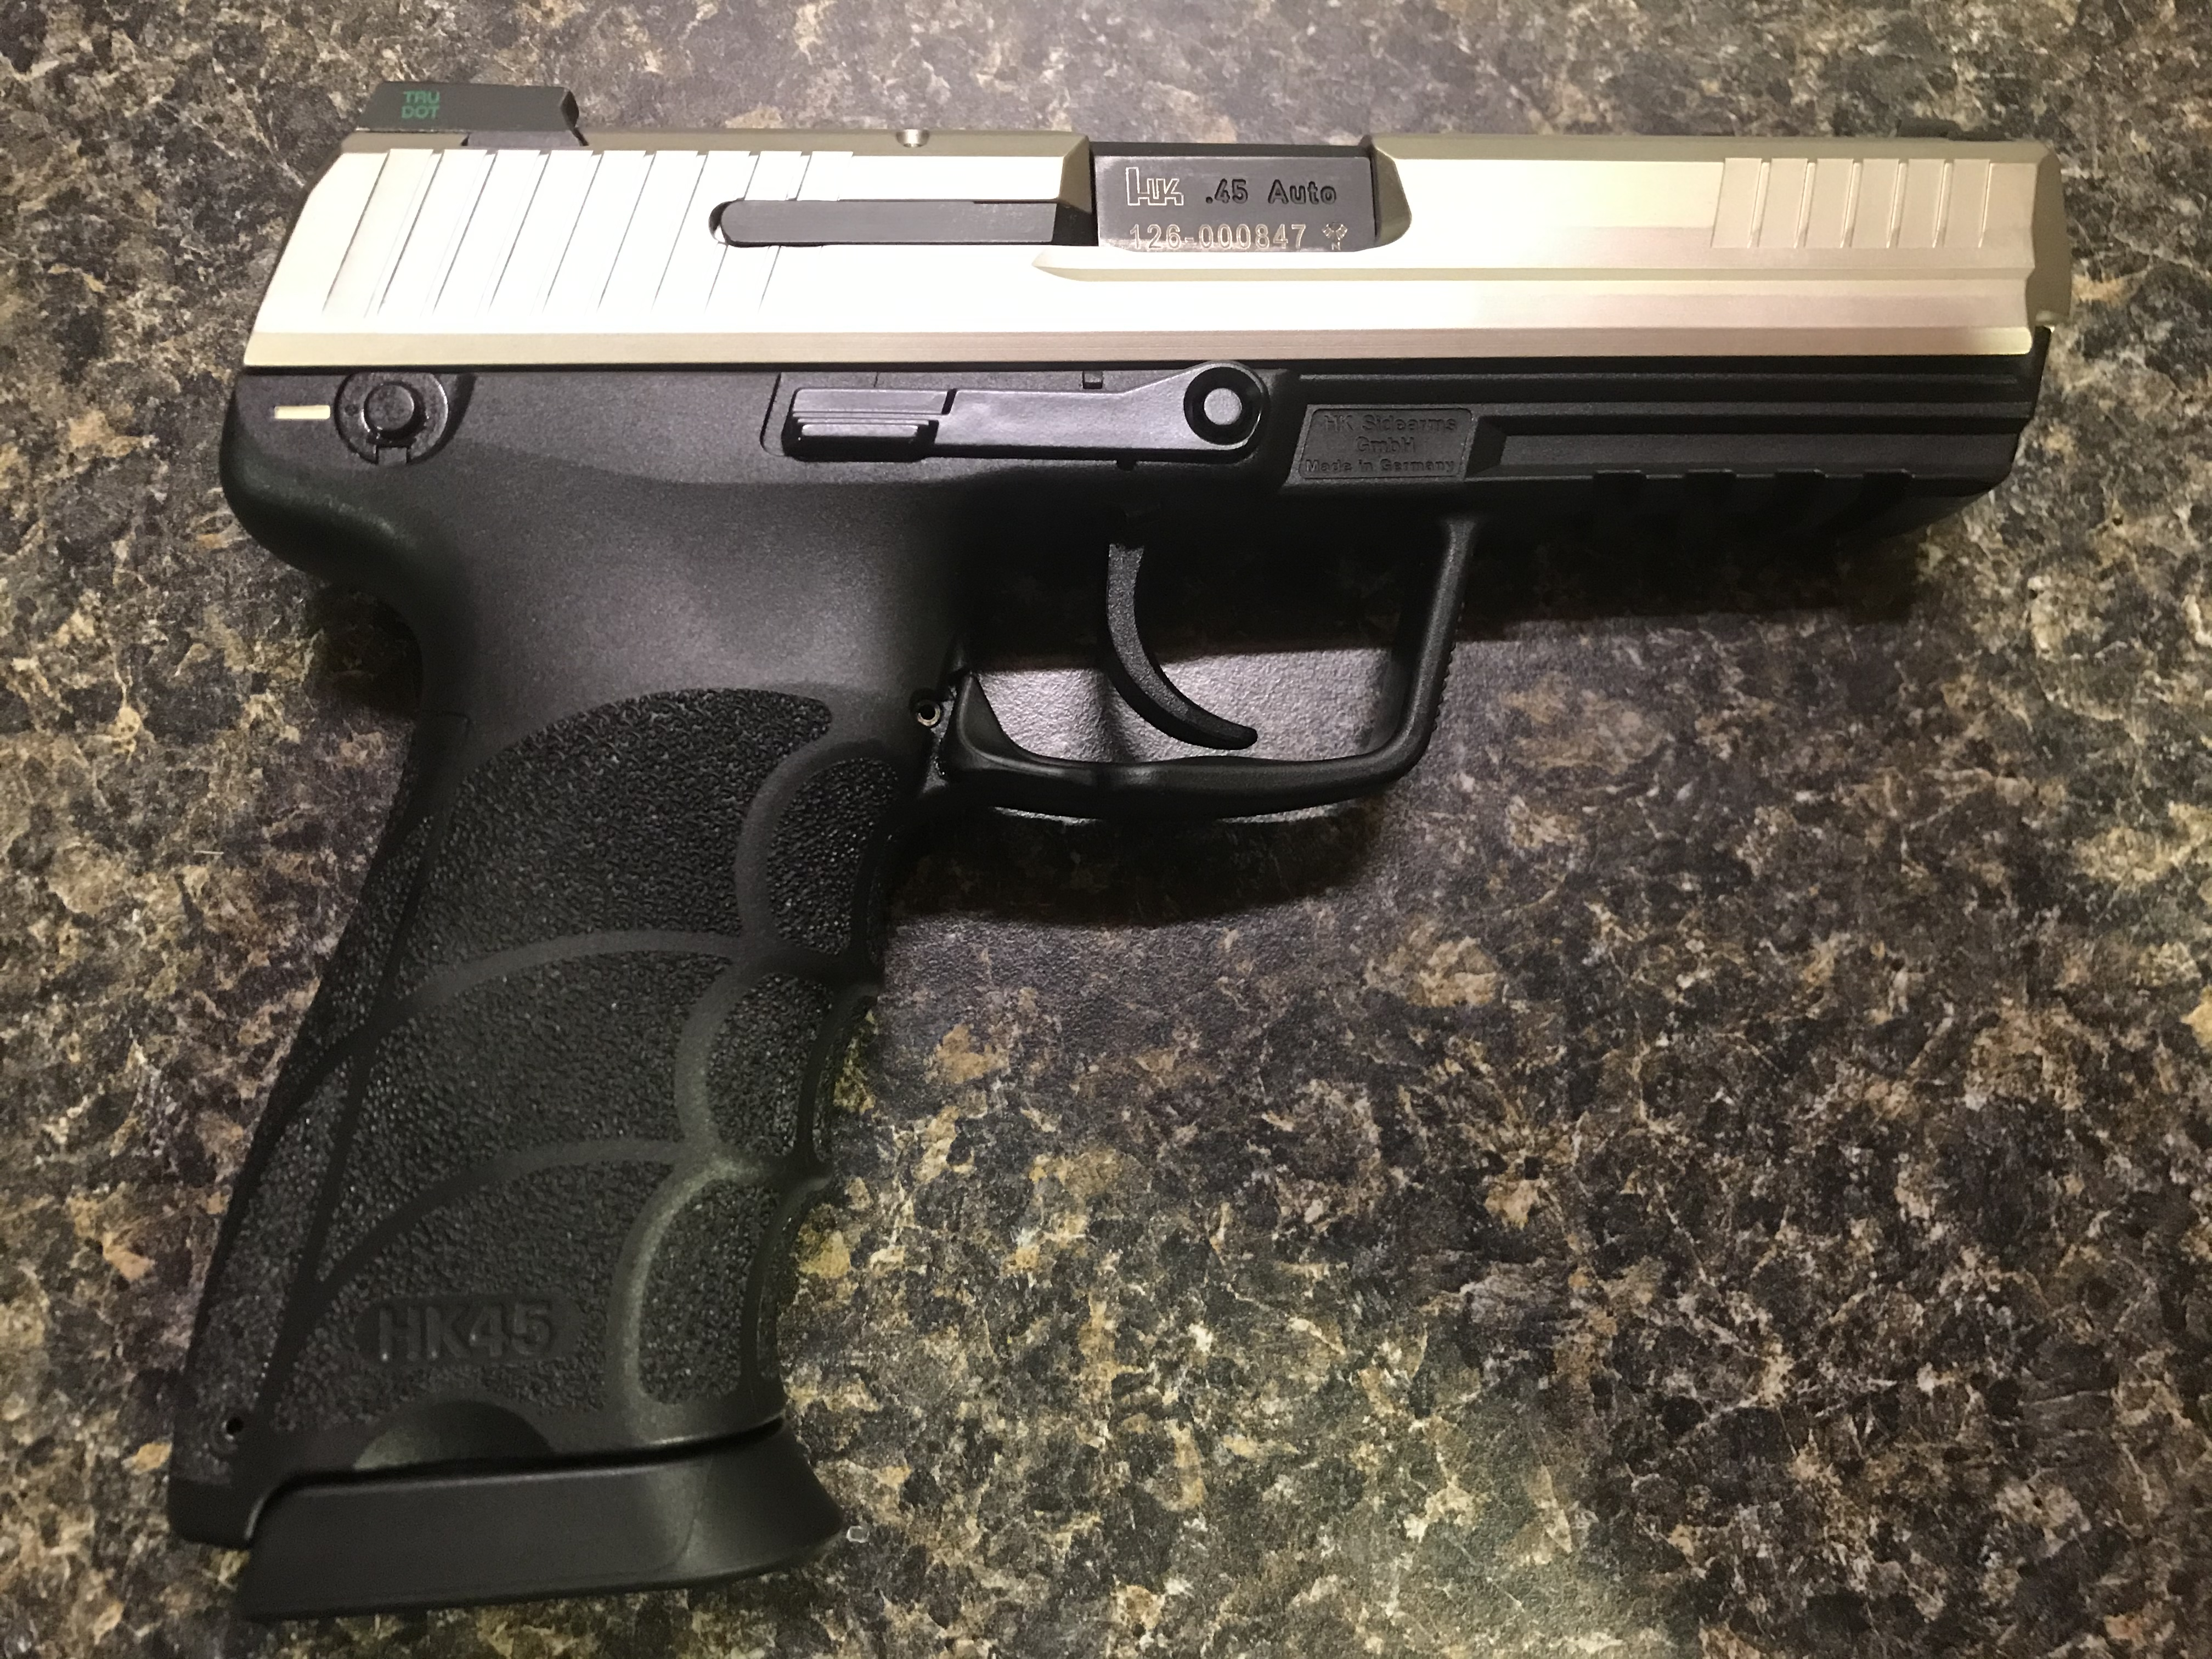 WTS:  HK45, German-made, custom finish, LEM with manual safety and night sights-37abbf03-c0d9-4546-b8a0-c140617a0216.jpeg